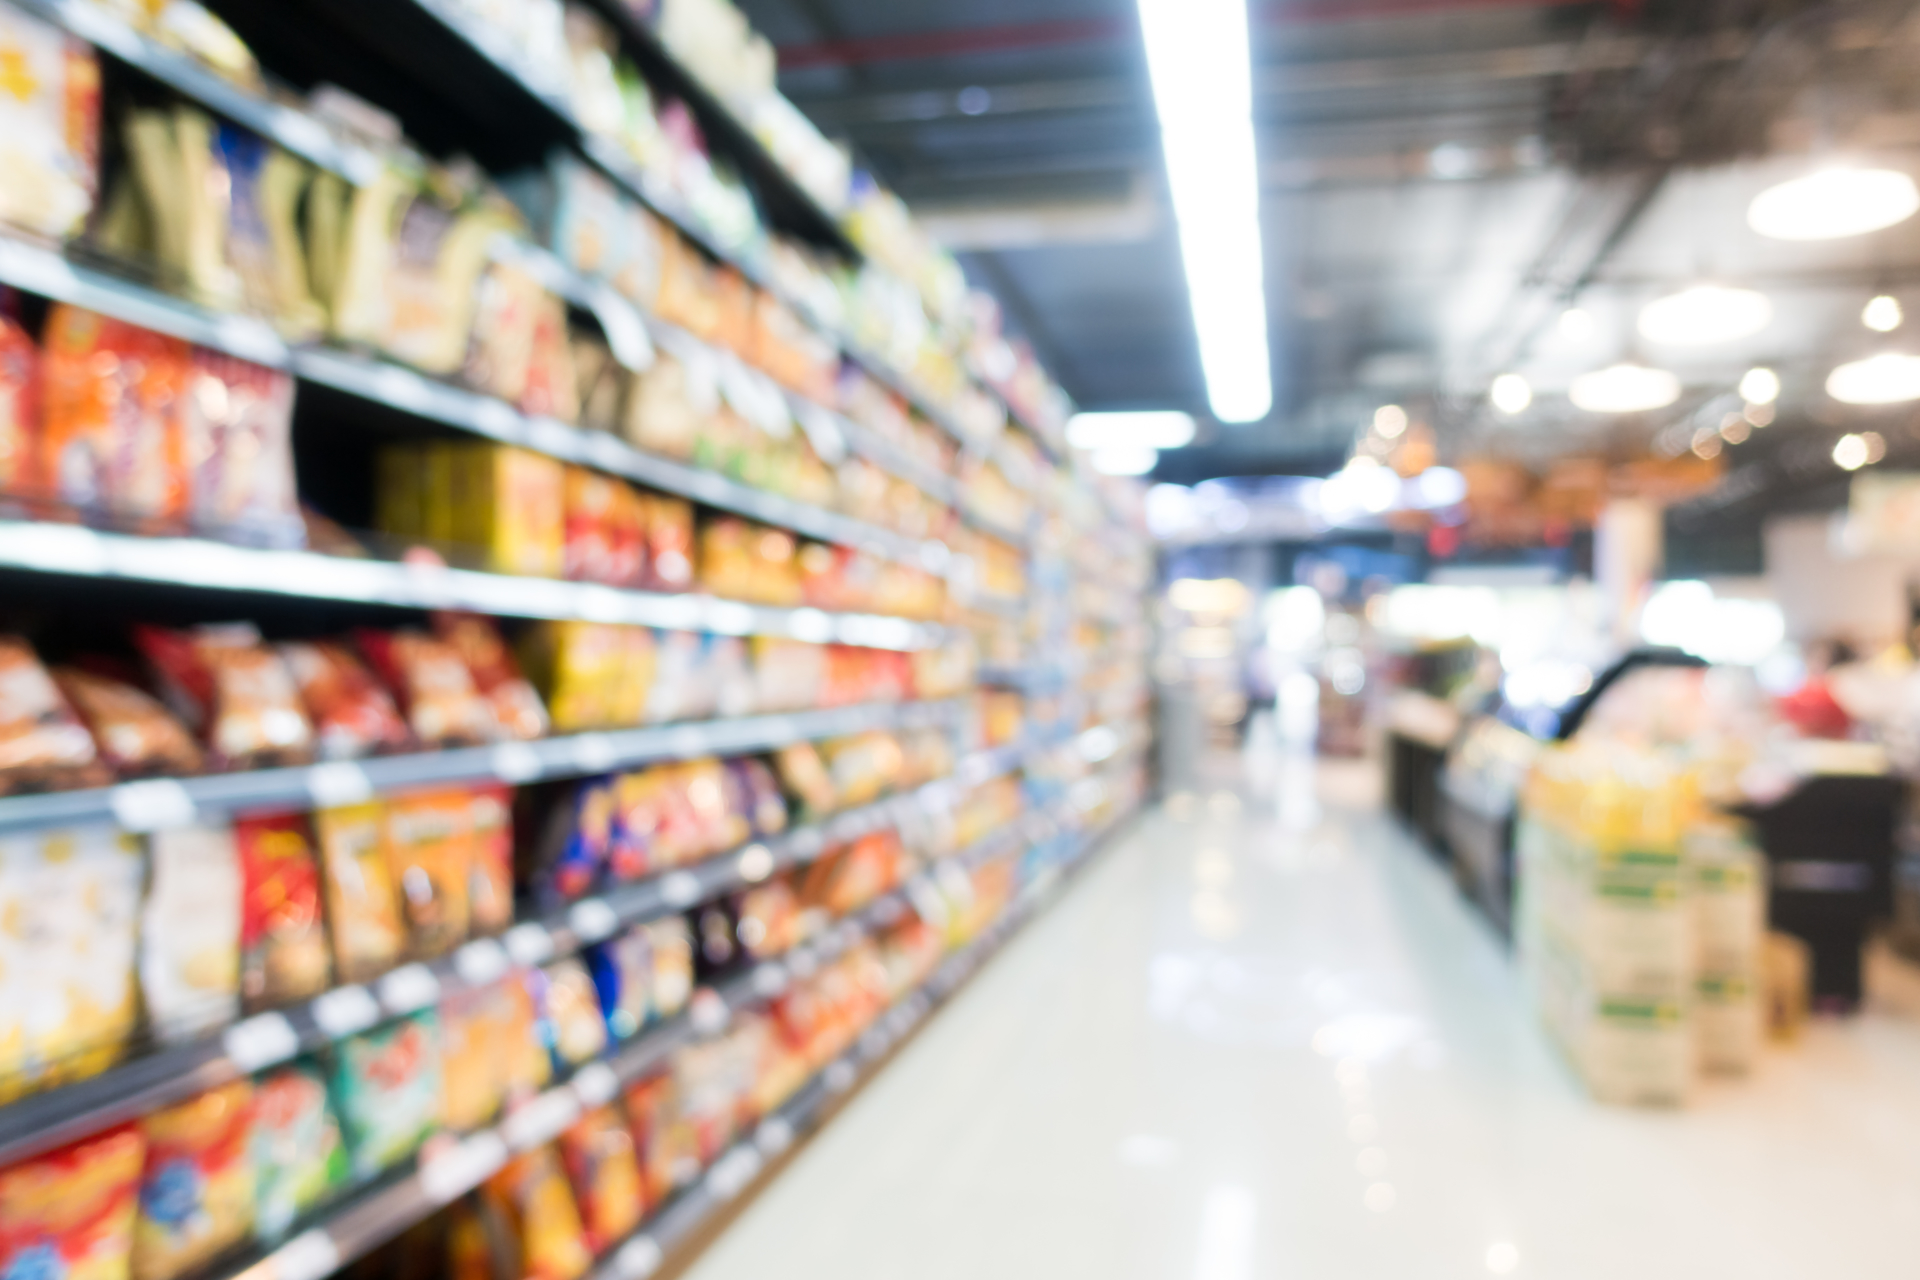 abstract-blur-supermarket-in-department-store